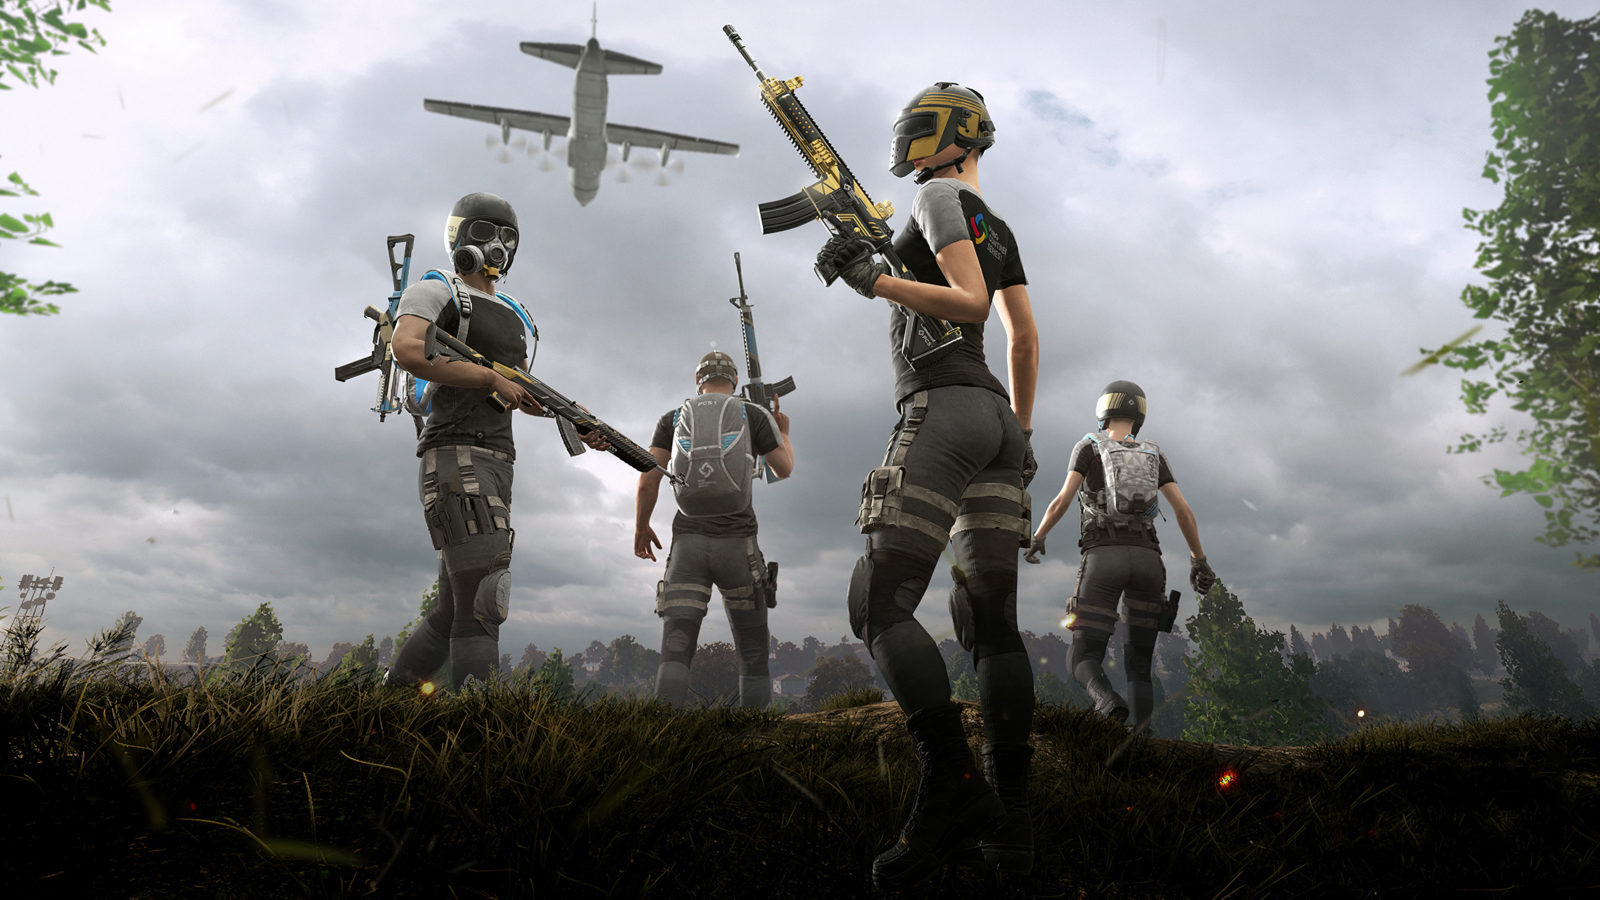 End of the line: Top 4 PUBG Mobile alternatives you can still switch to